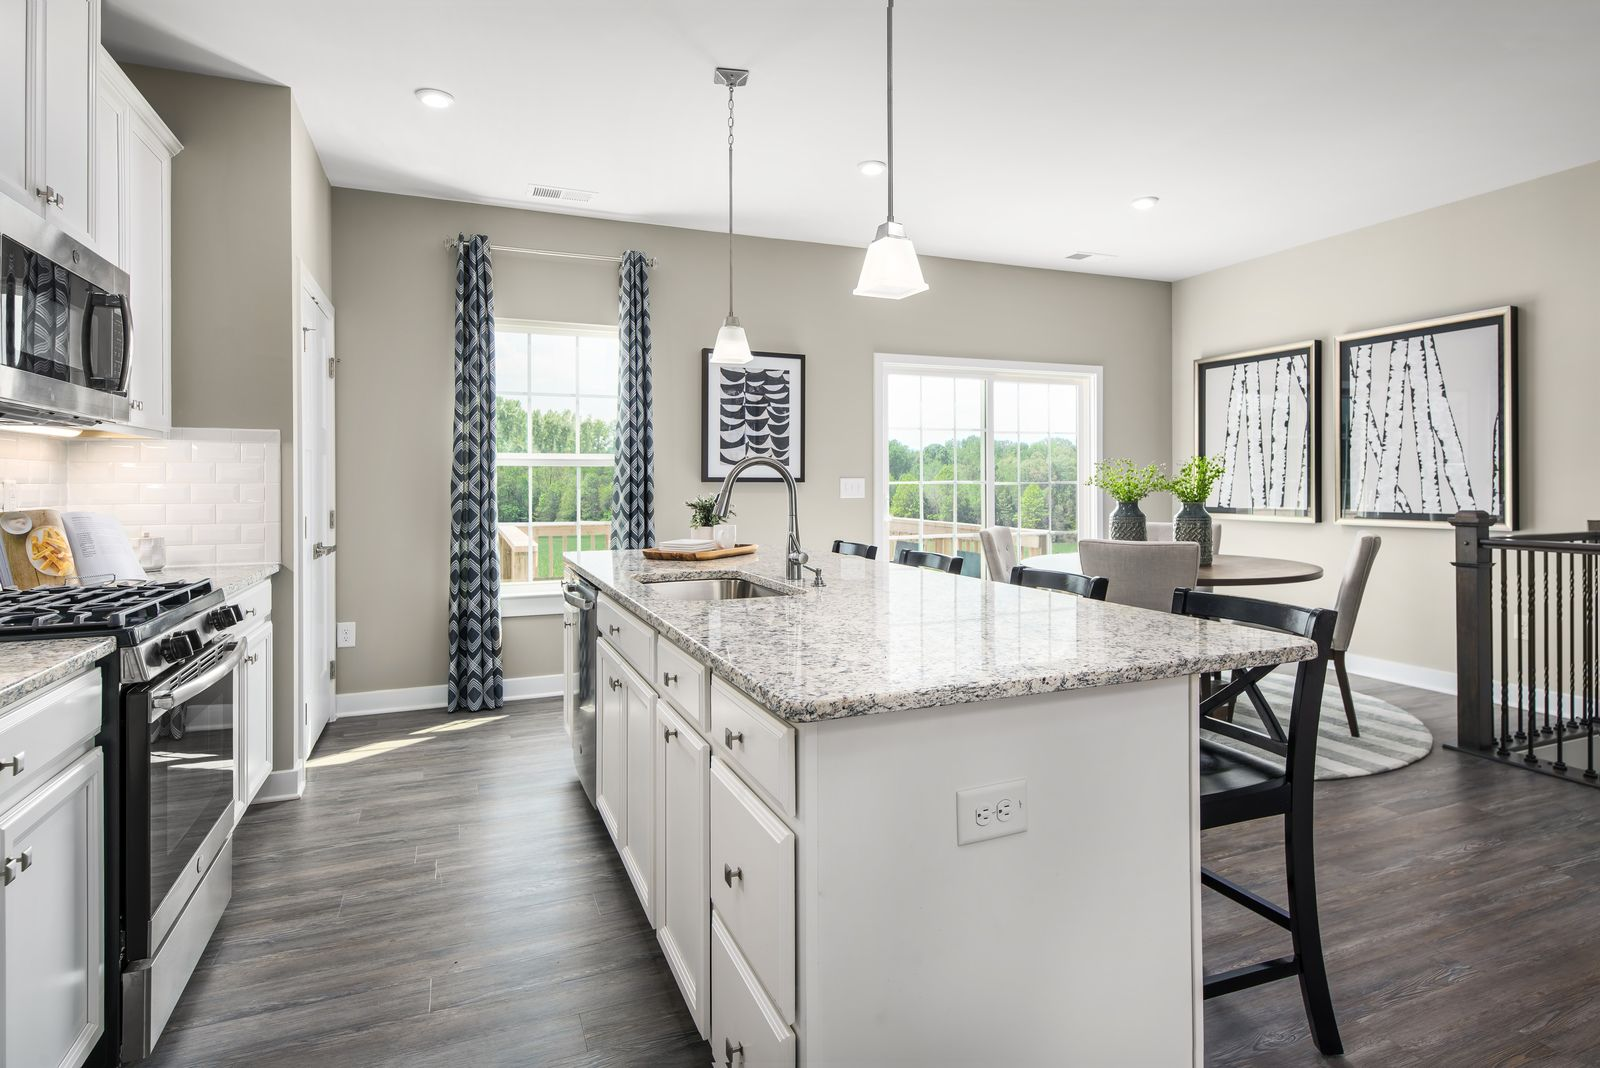 Kitchen featured in the Mendelssohn with 1-Car Garage By Ryan Homes in Philadelphia, NJ